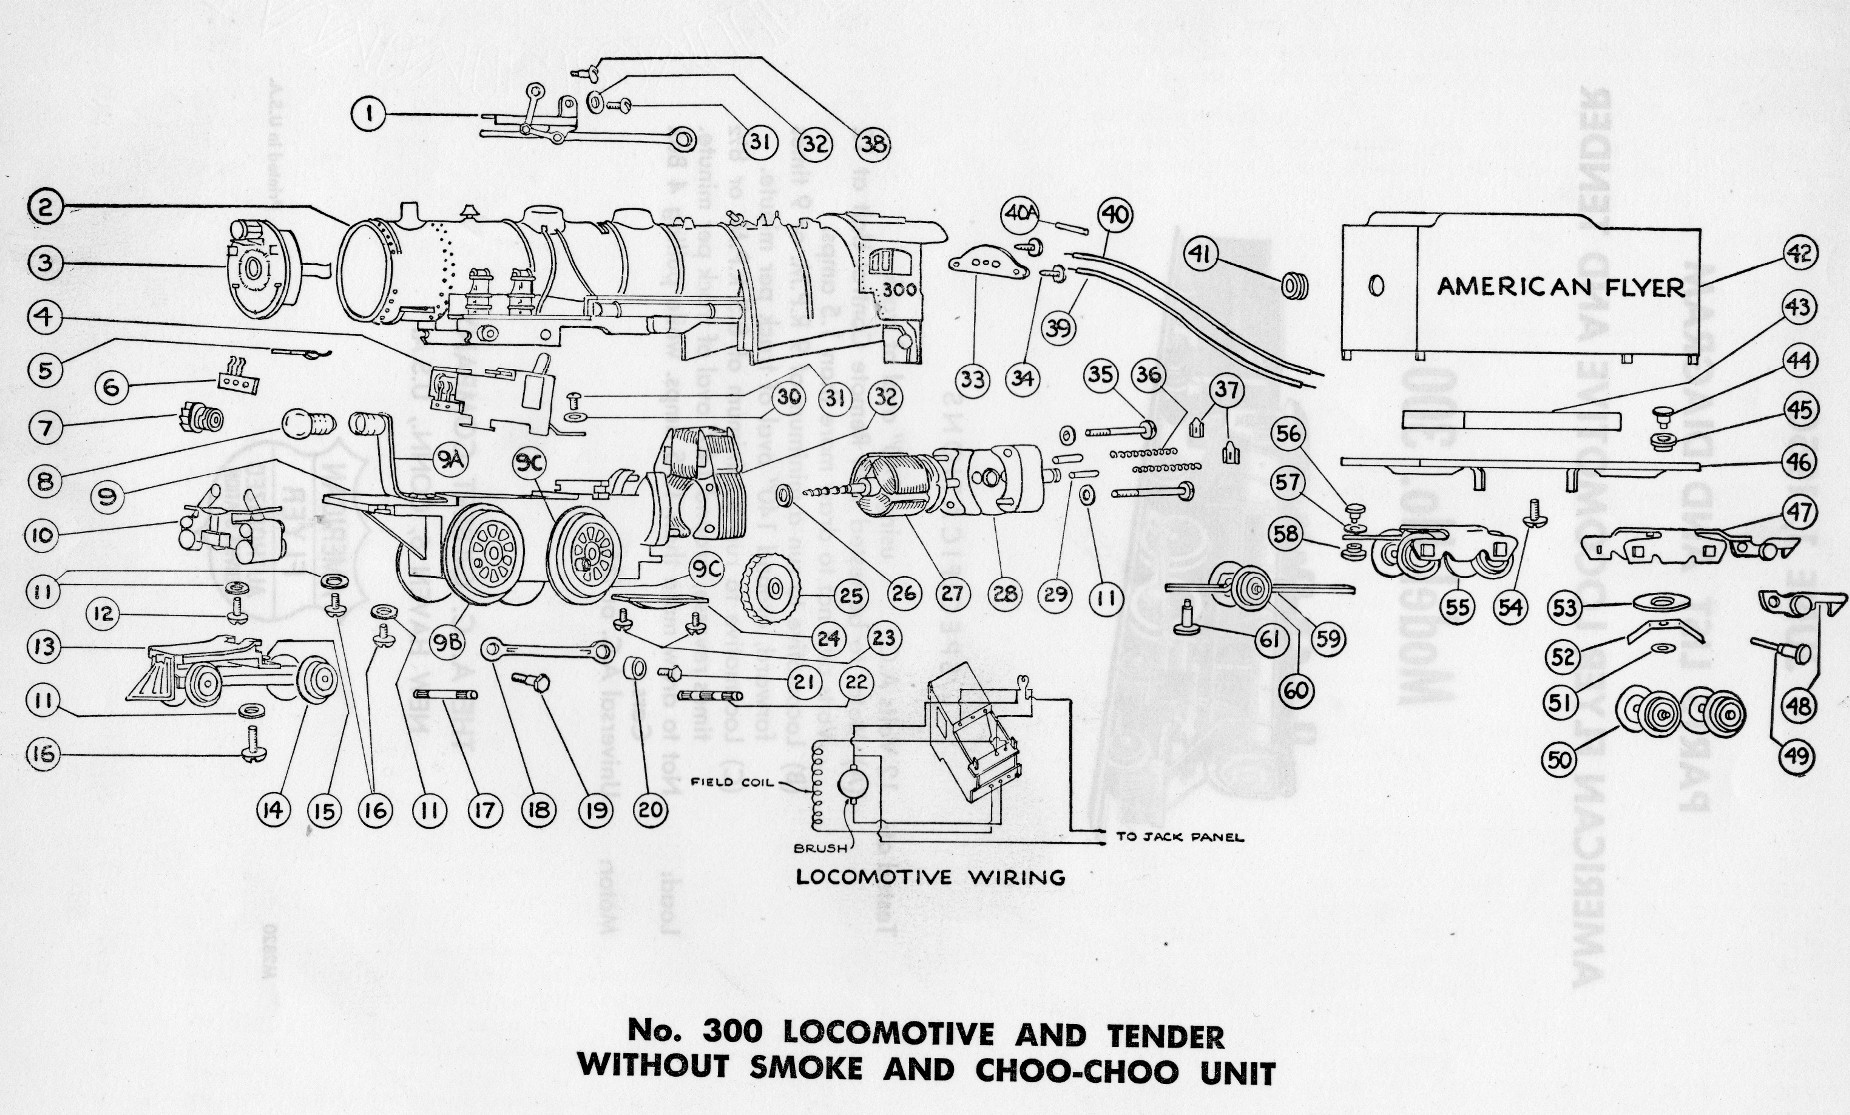 American Flyer Steam Whistle Wiring Diagram